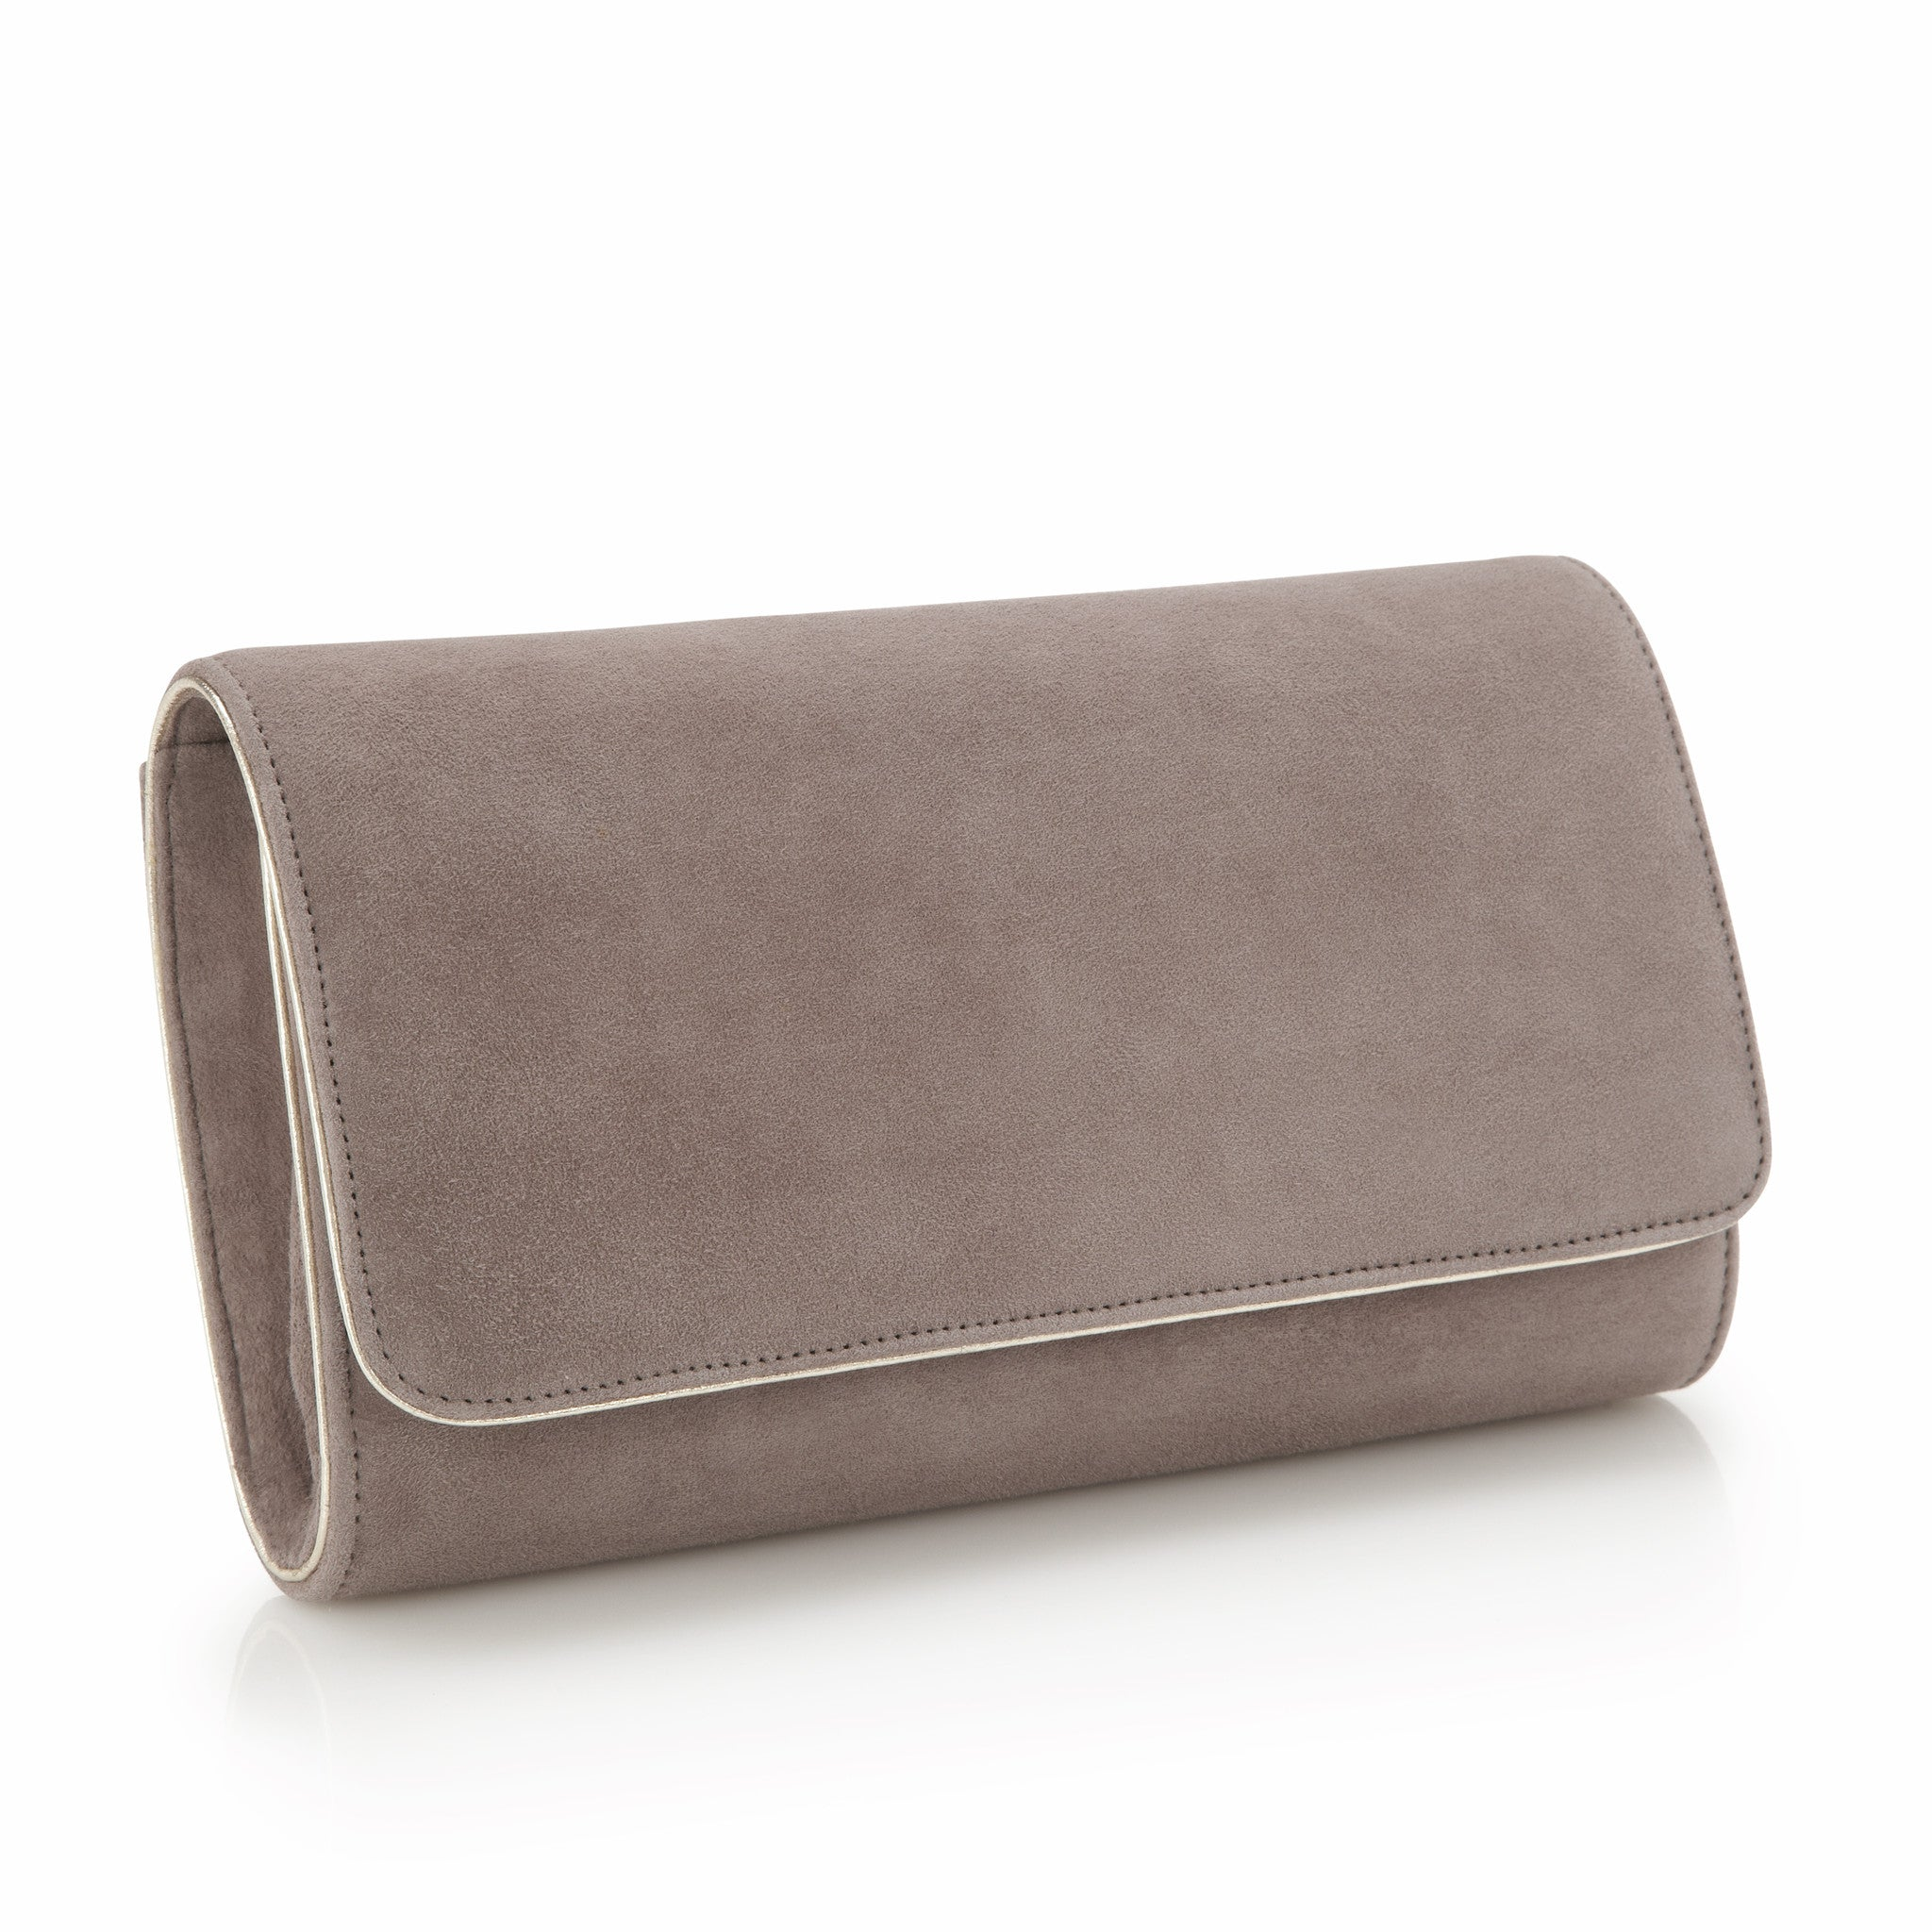 4abf86eed4 ... Natasha Cinder - Occasion Accessories - Cinder Kid Suede - Clutch - Bag  - Gold Leather ...